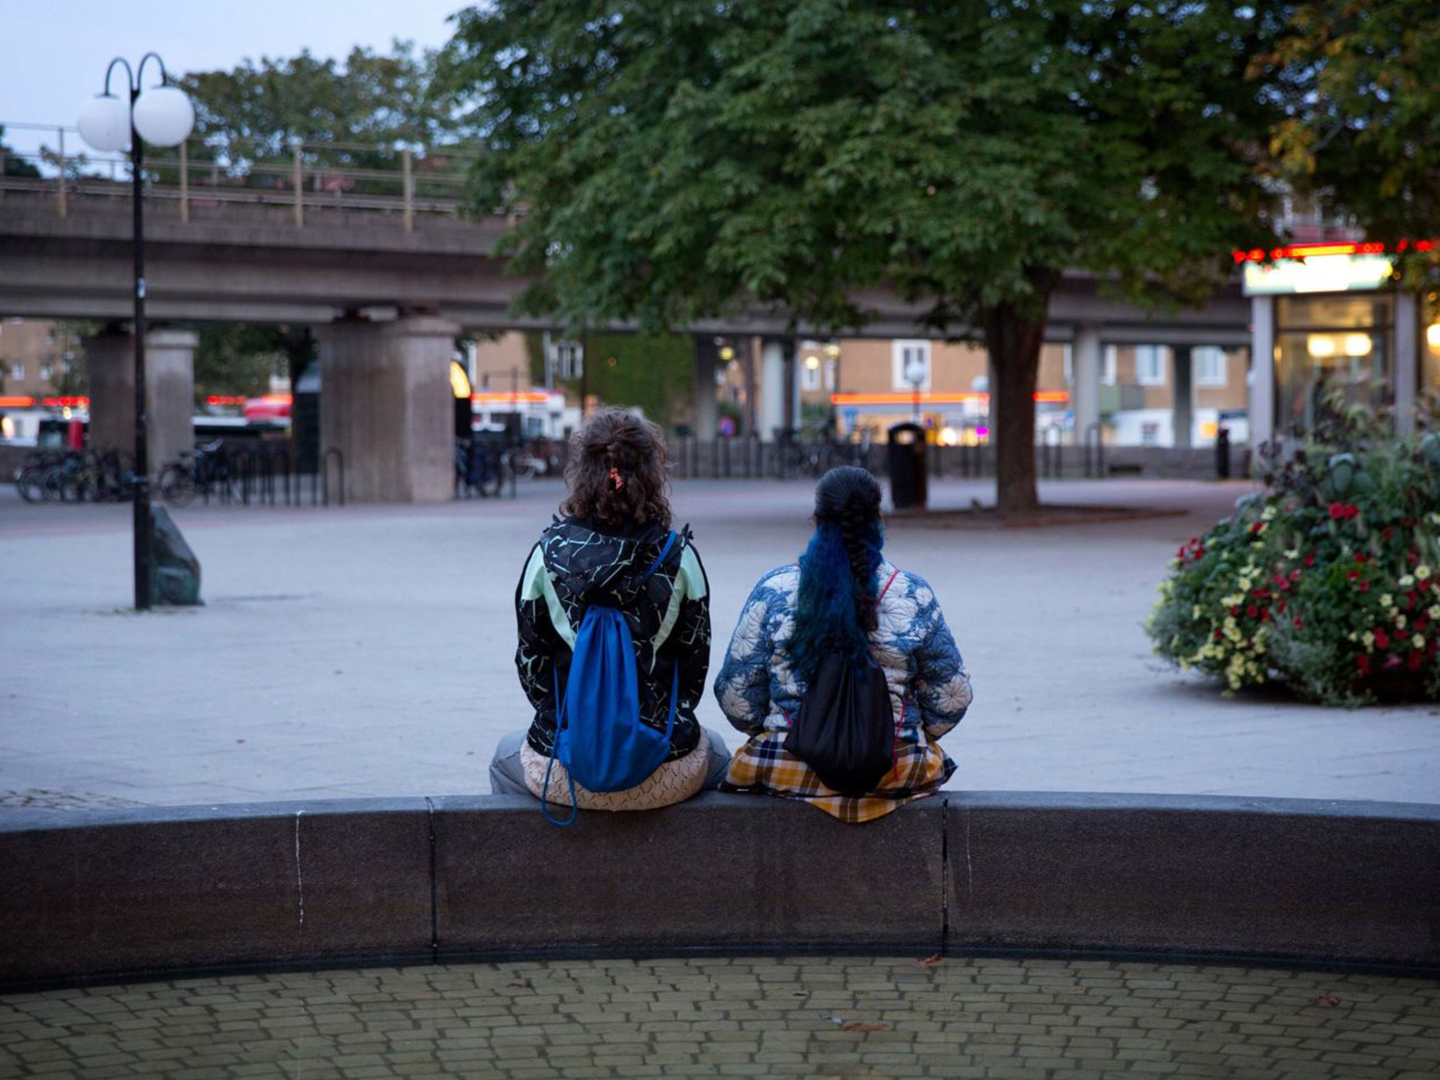 Gendered landscapes: equity in the public realm